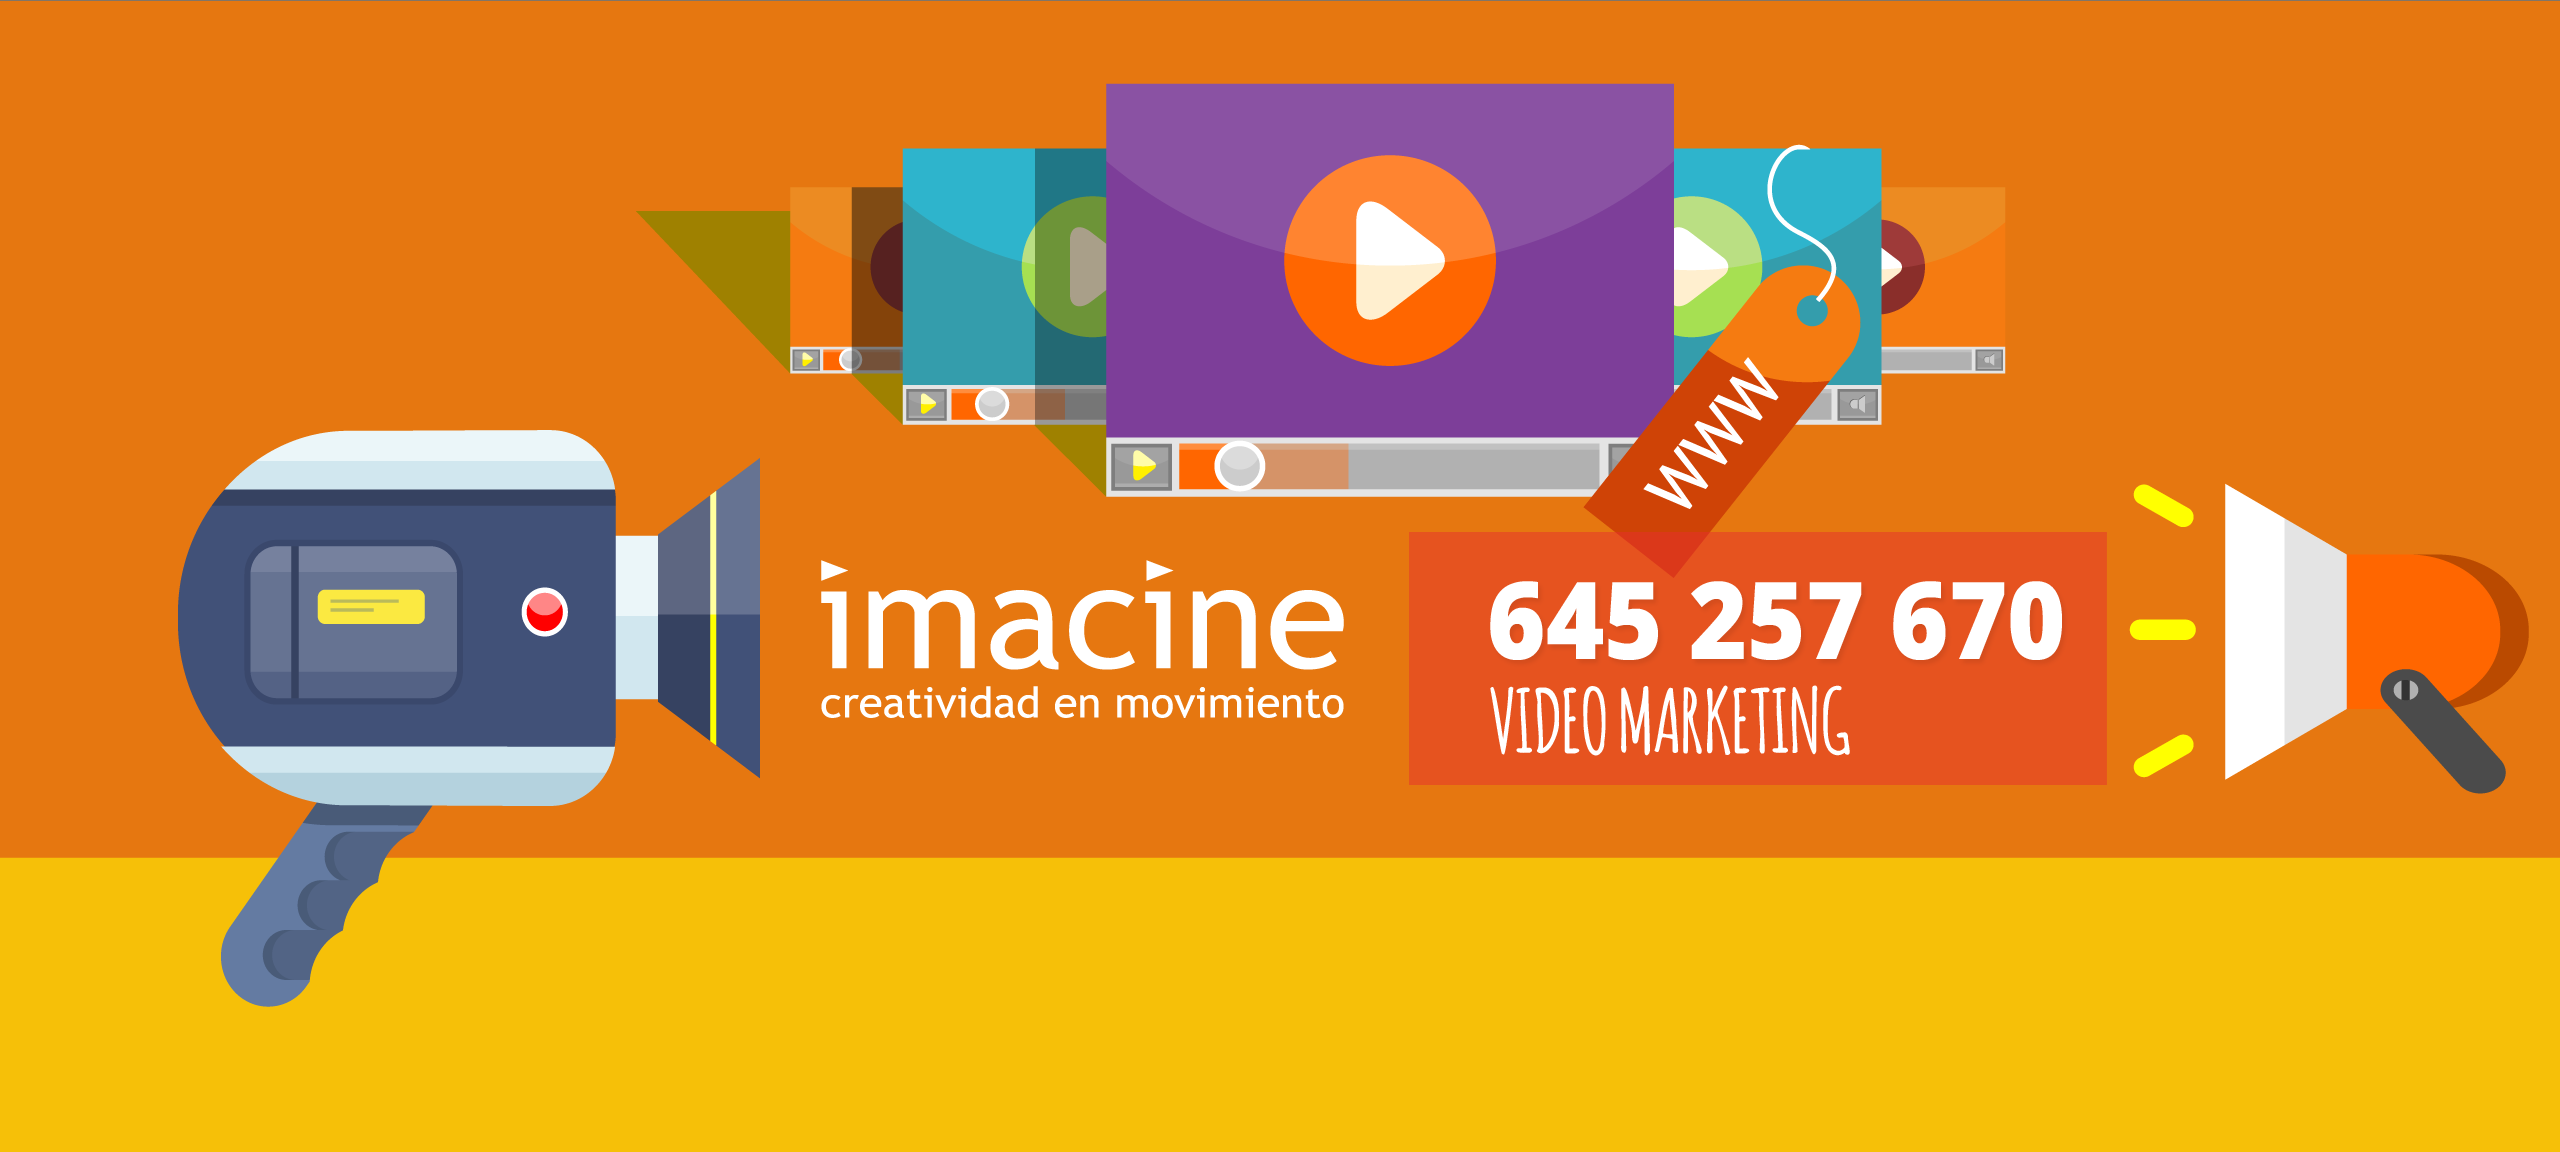 Video Marketing Madrid Imacine